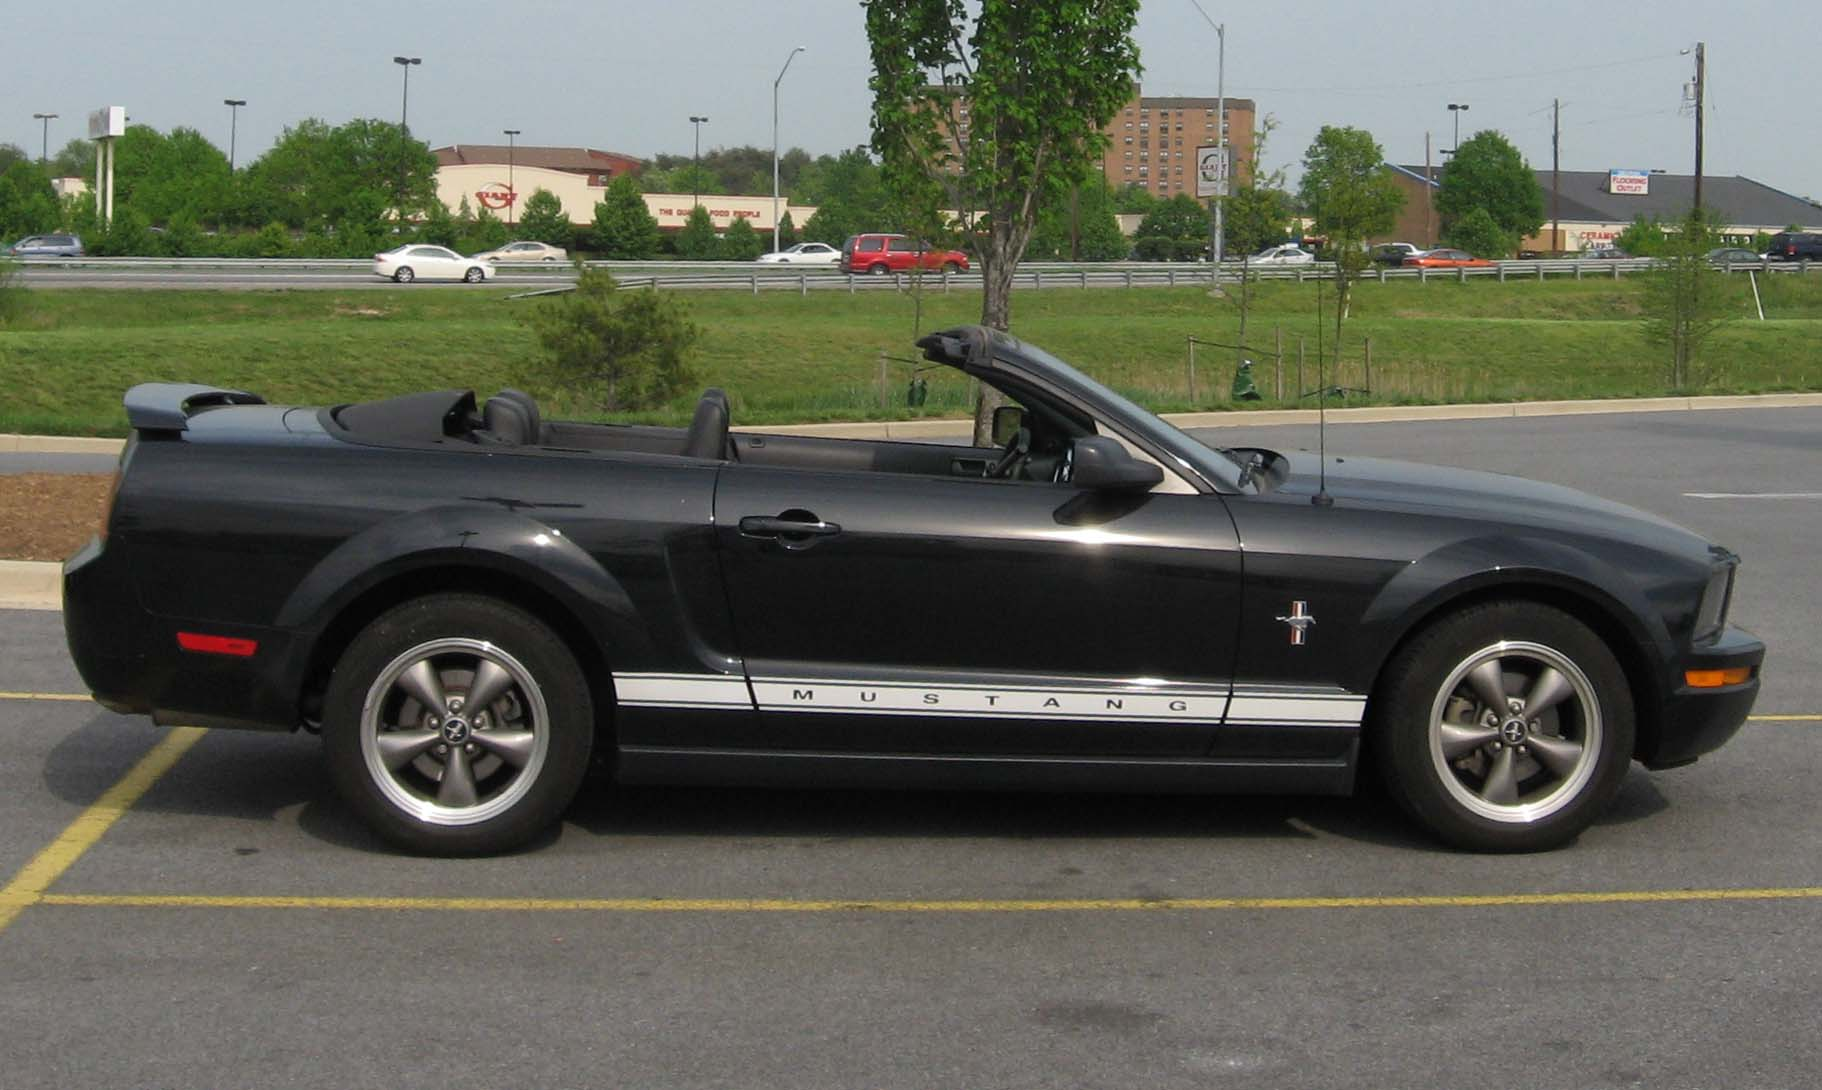 File:Ford-Mustang-Pony-convertible.jpg - Wikimedia Commons